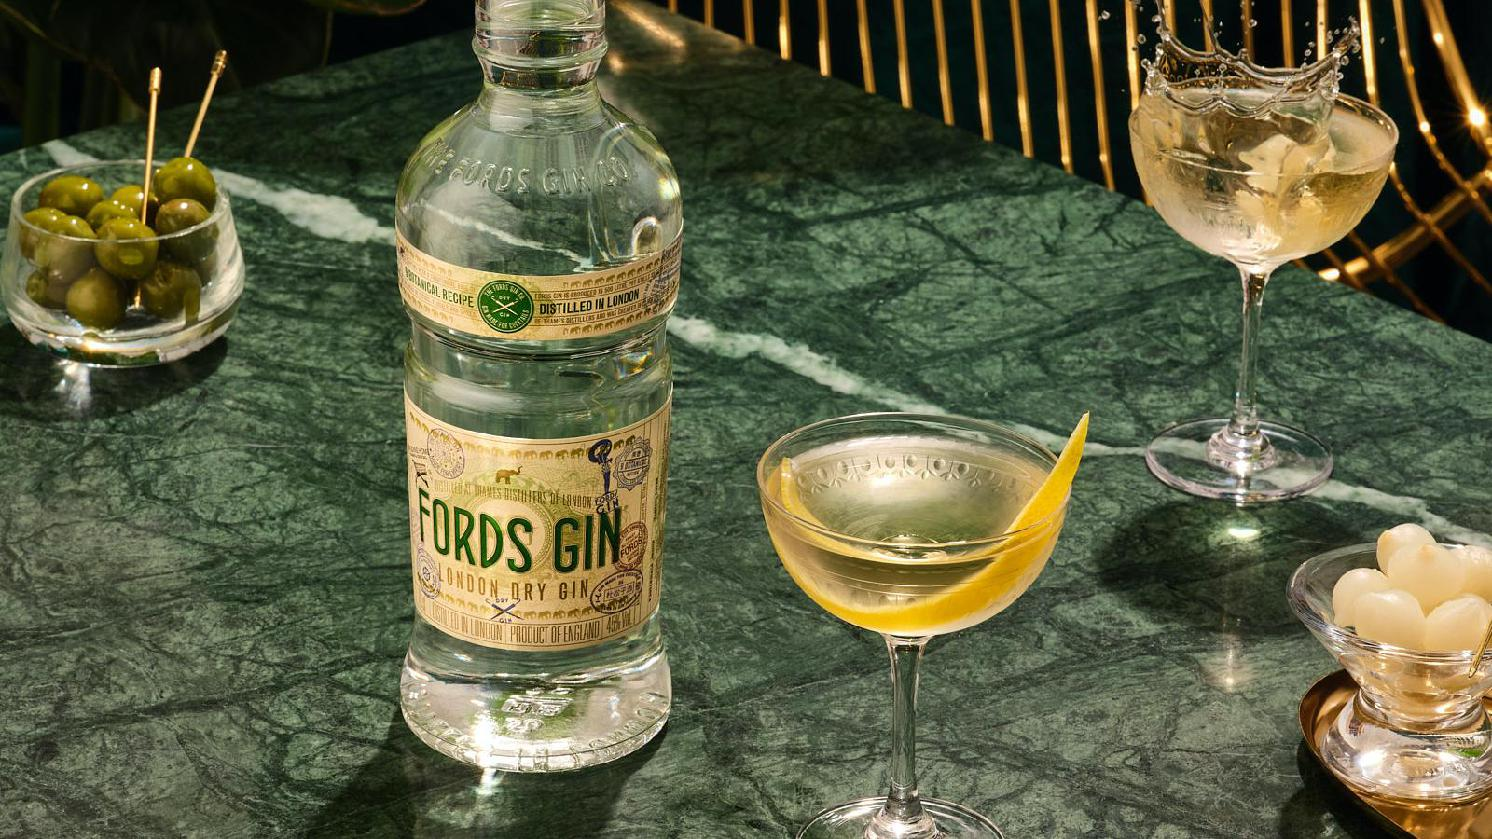 Sip and Savour Martinis and Oysters with Fords Gin this London Cocktail Week